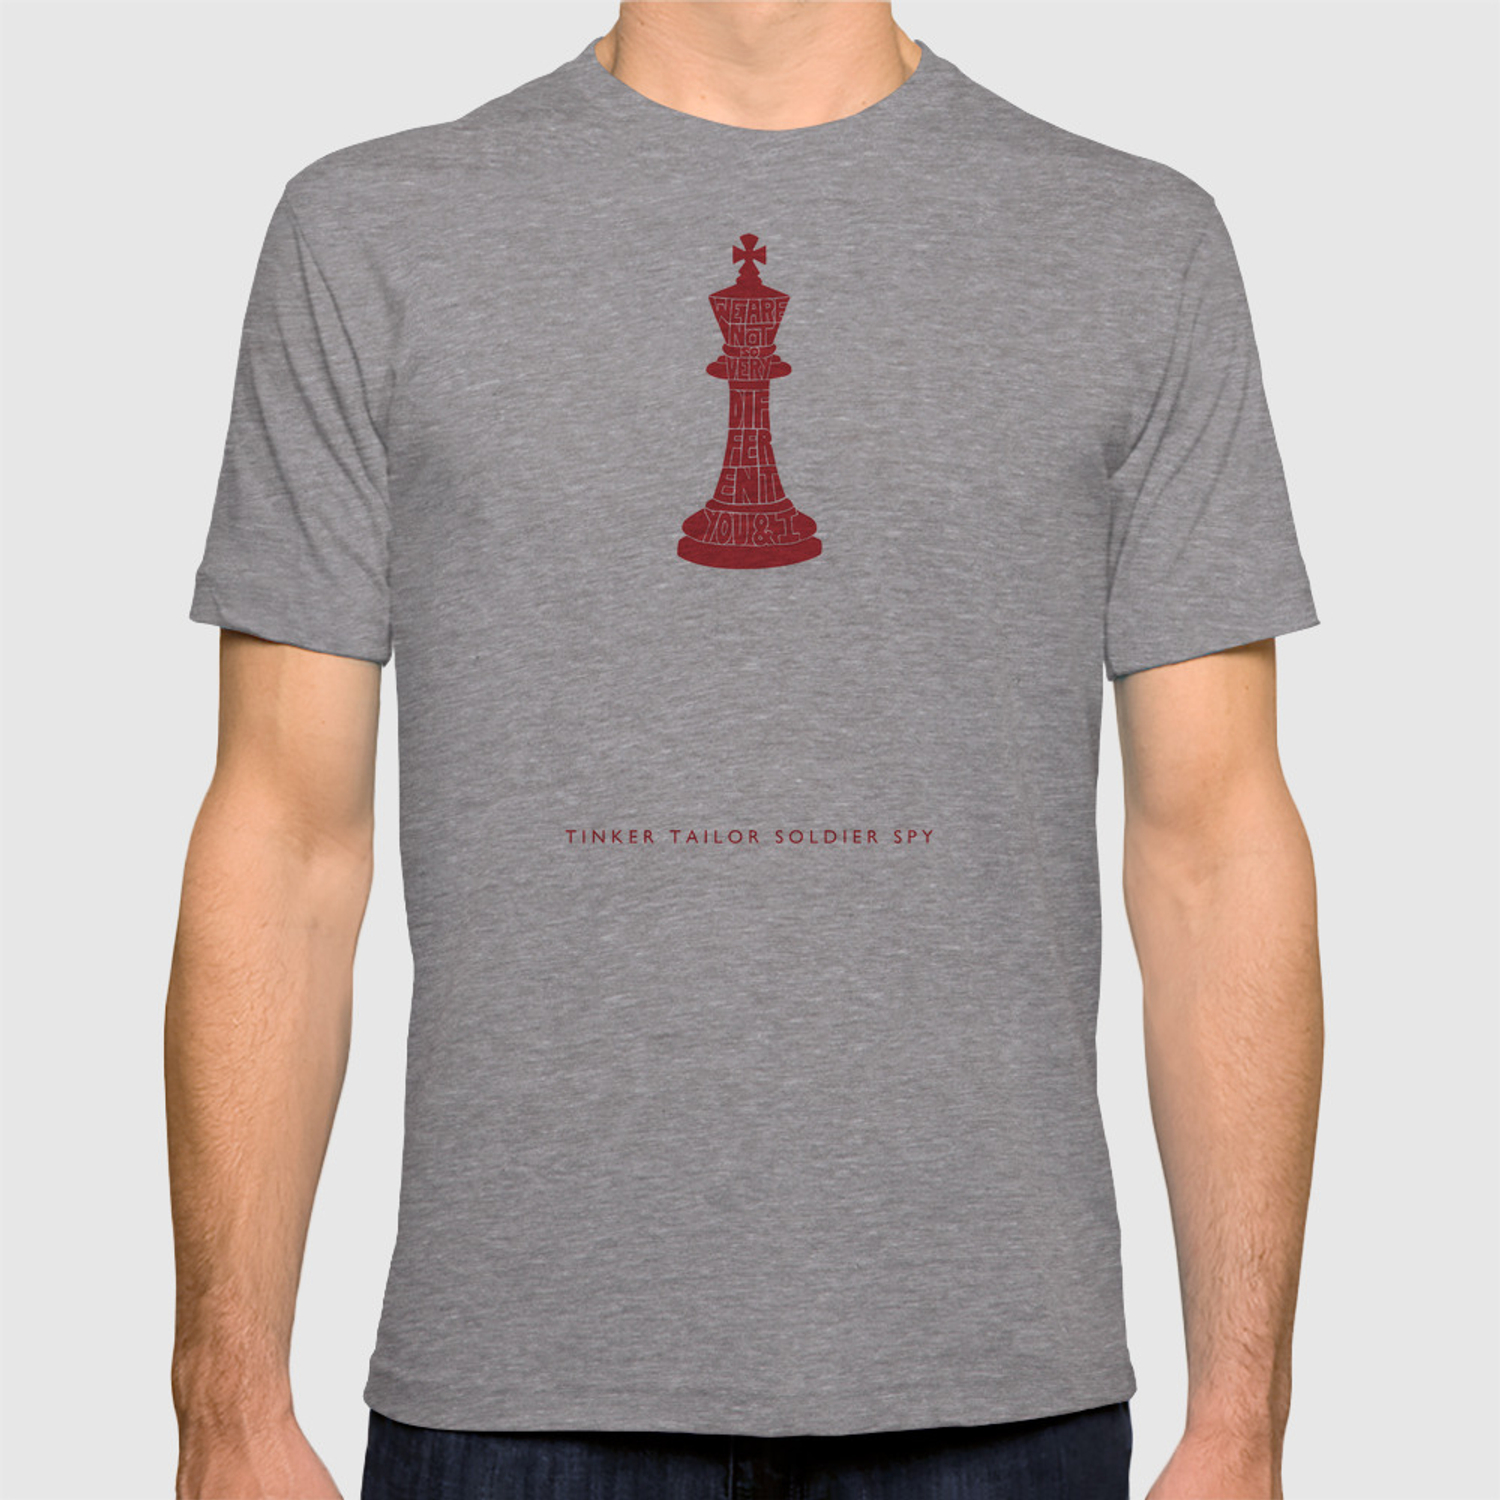 32cbca66b4928e We Are Not So Very Different -Tinker Tailor Soldier Spy T-shirt by zchbrns